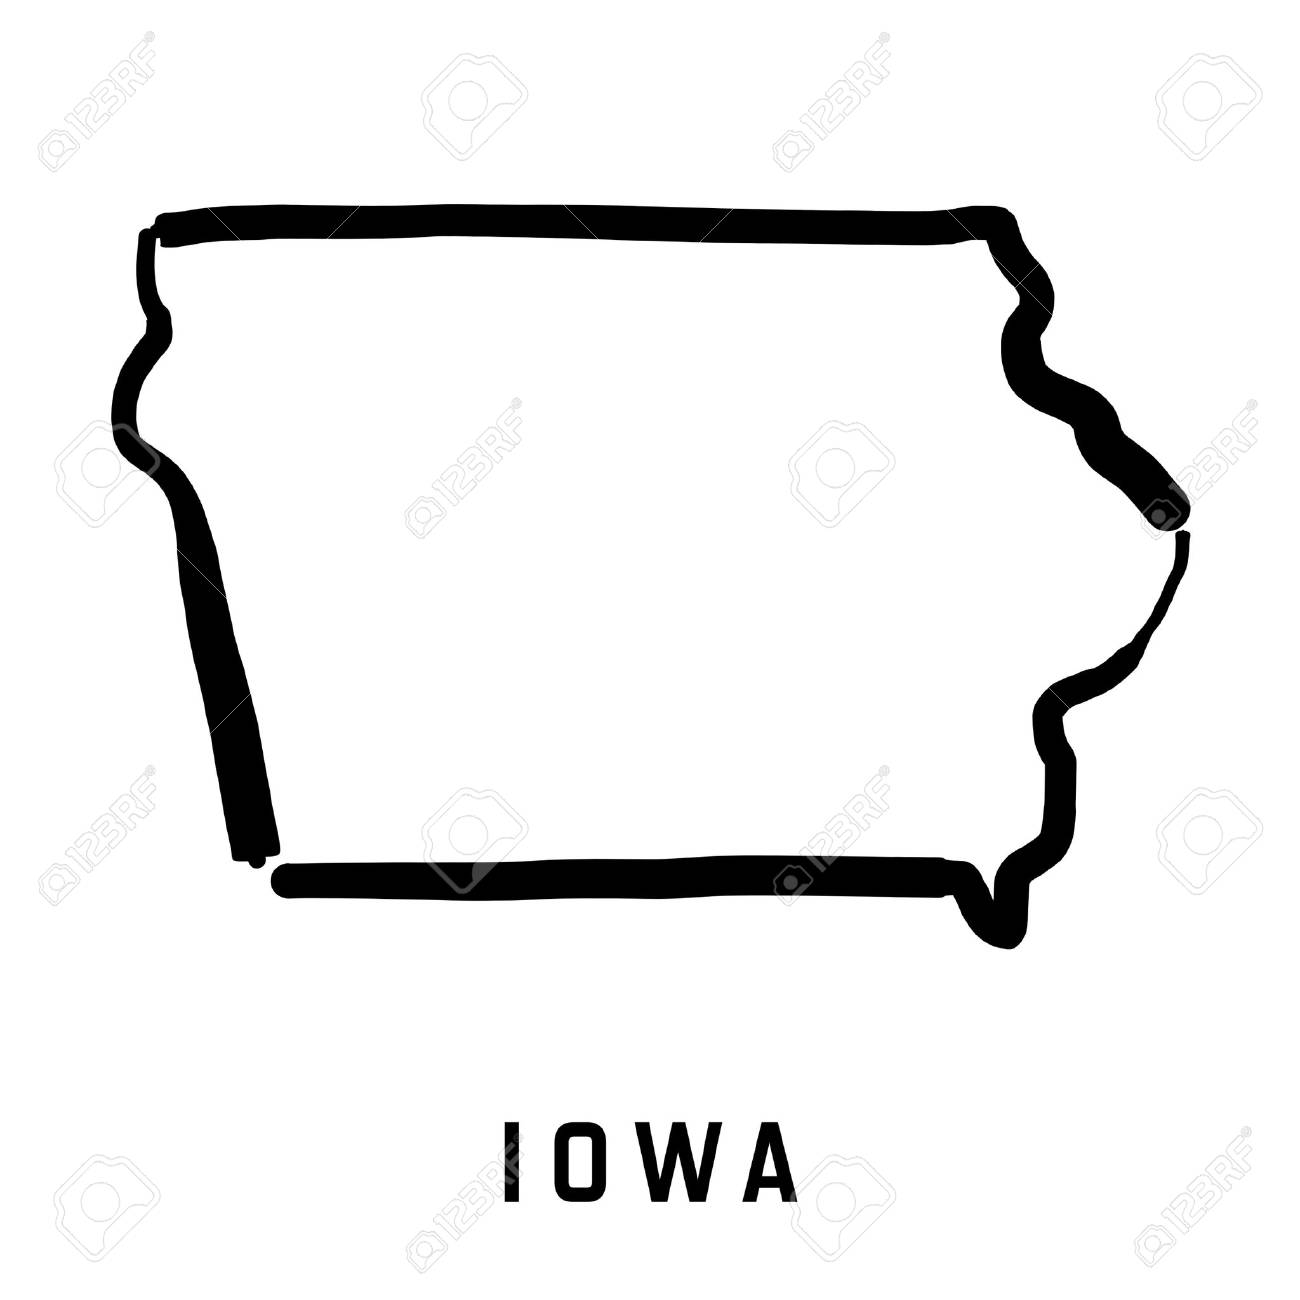 U S State Map Vector.Iowa State Map Outline Smooth Simplified Us State Shape Map